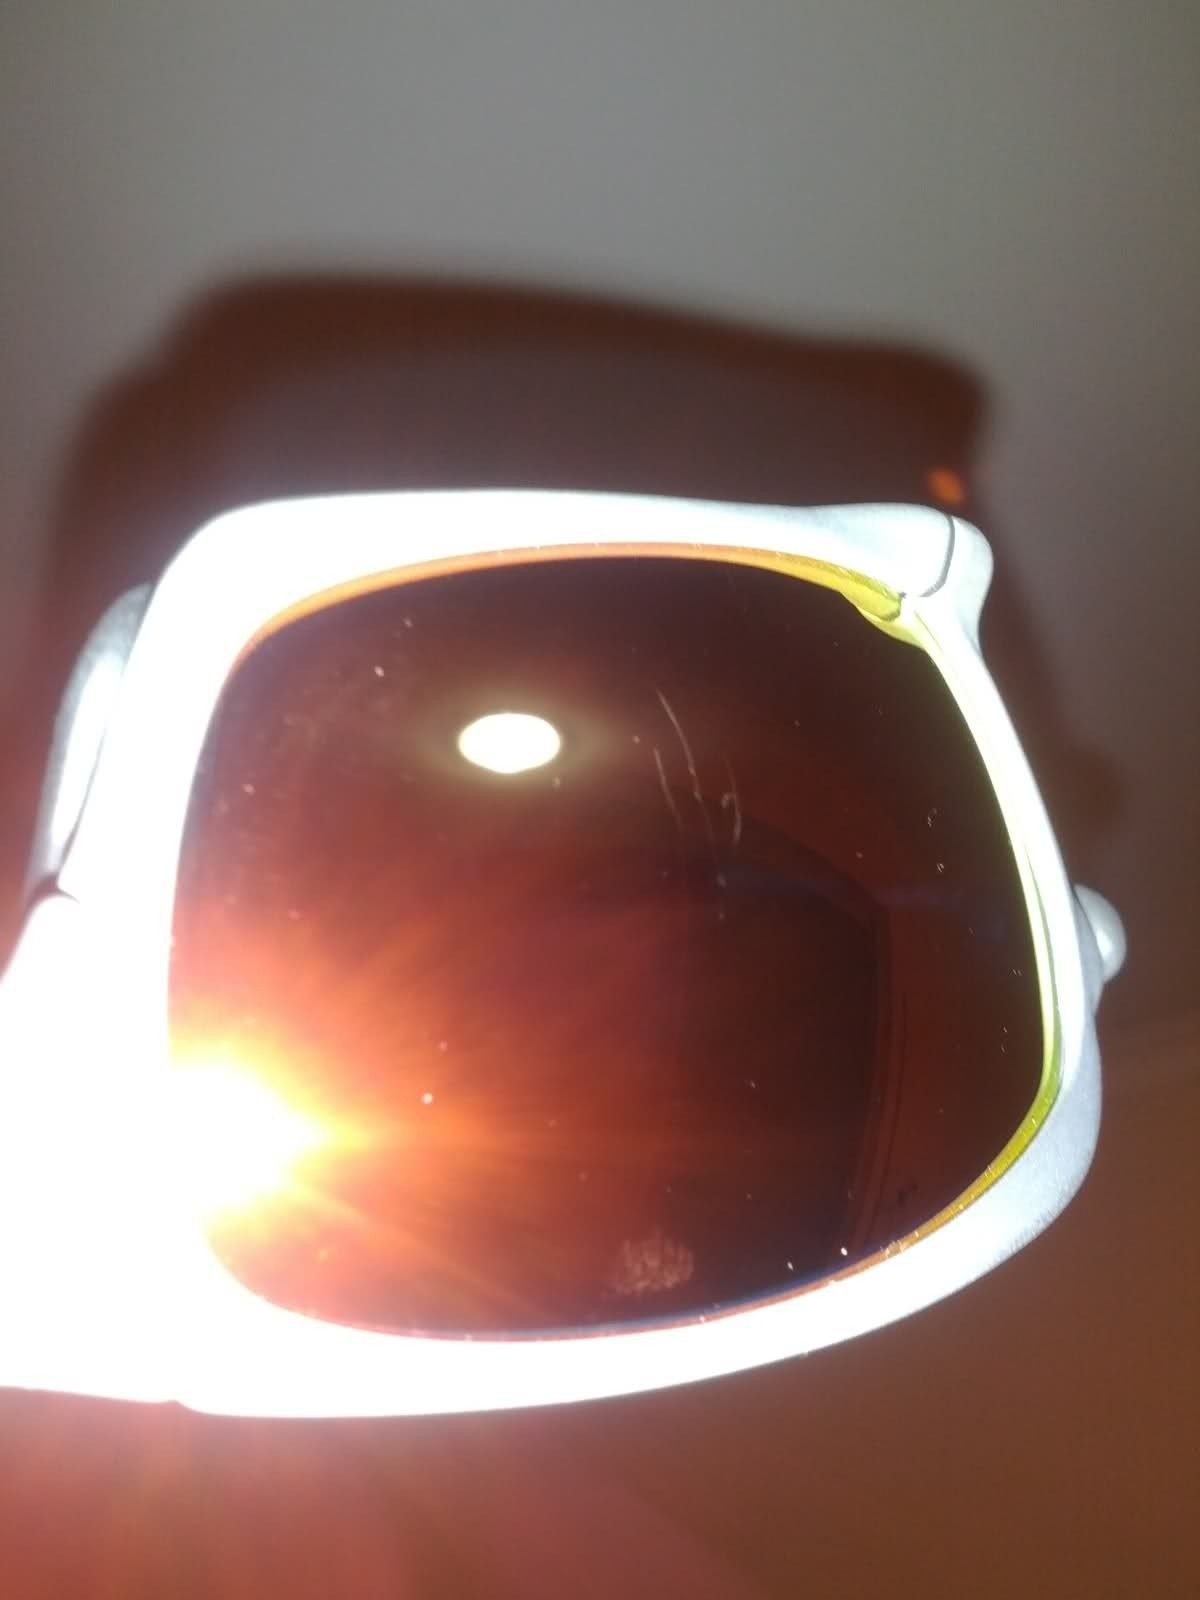 Gutted. Scratched Lens. - swcnr8.jpg